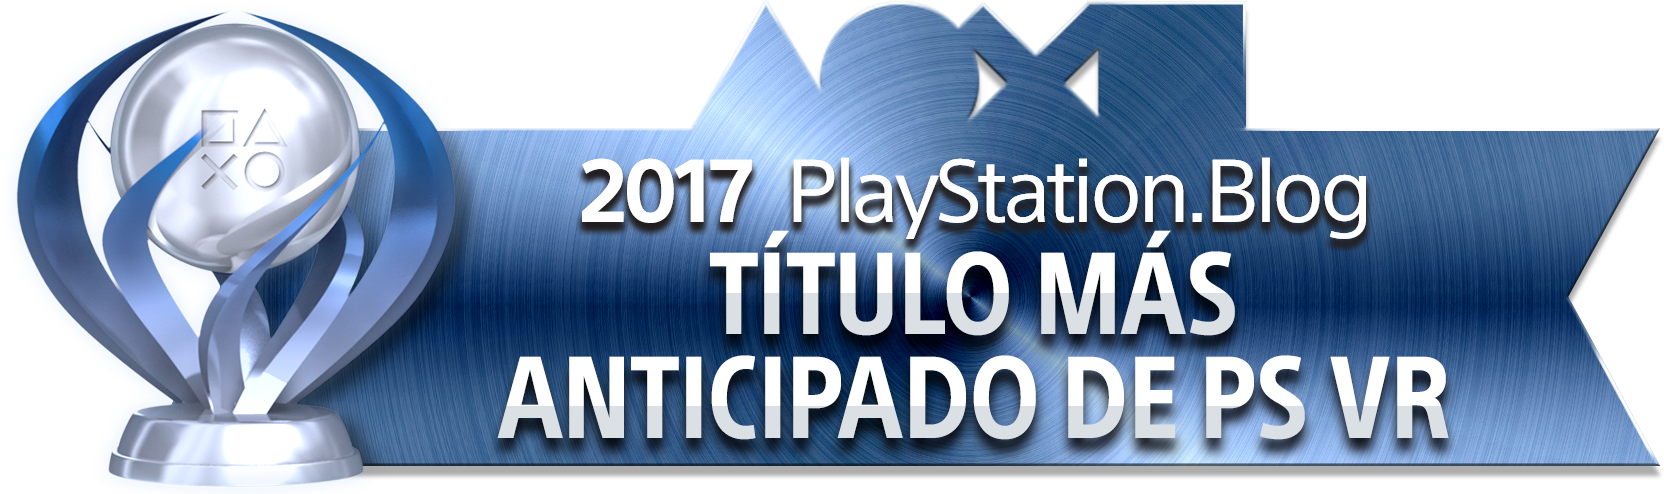 PlayStation Blog Game of the Year 2017 - Most Anticipated PS VR Title (Platinum)